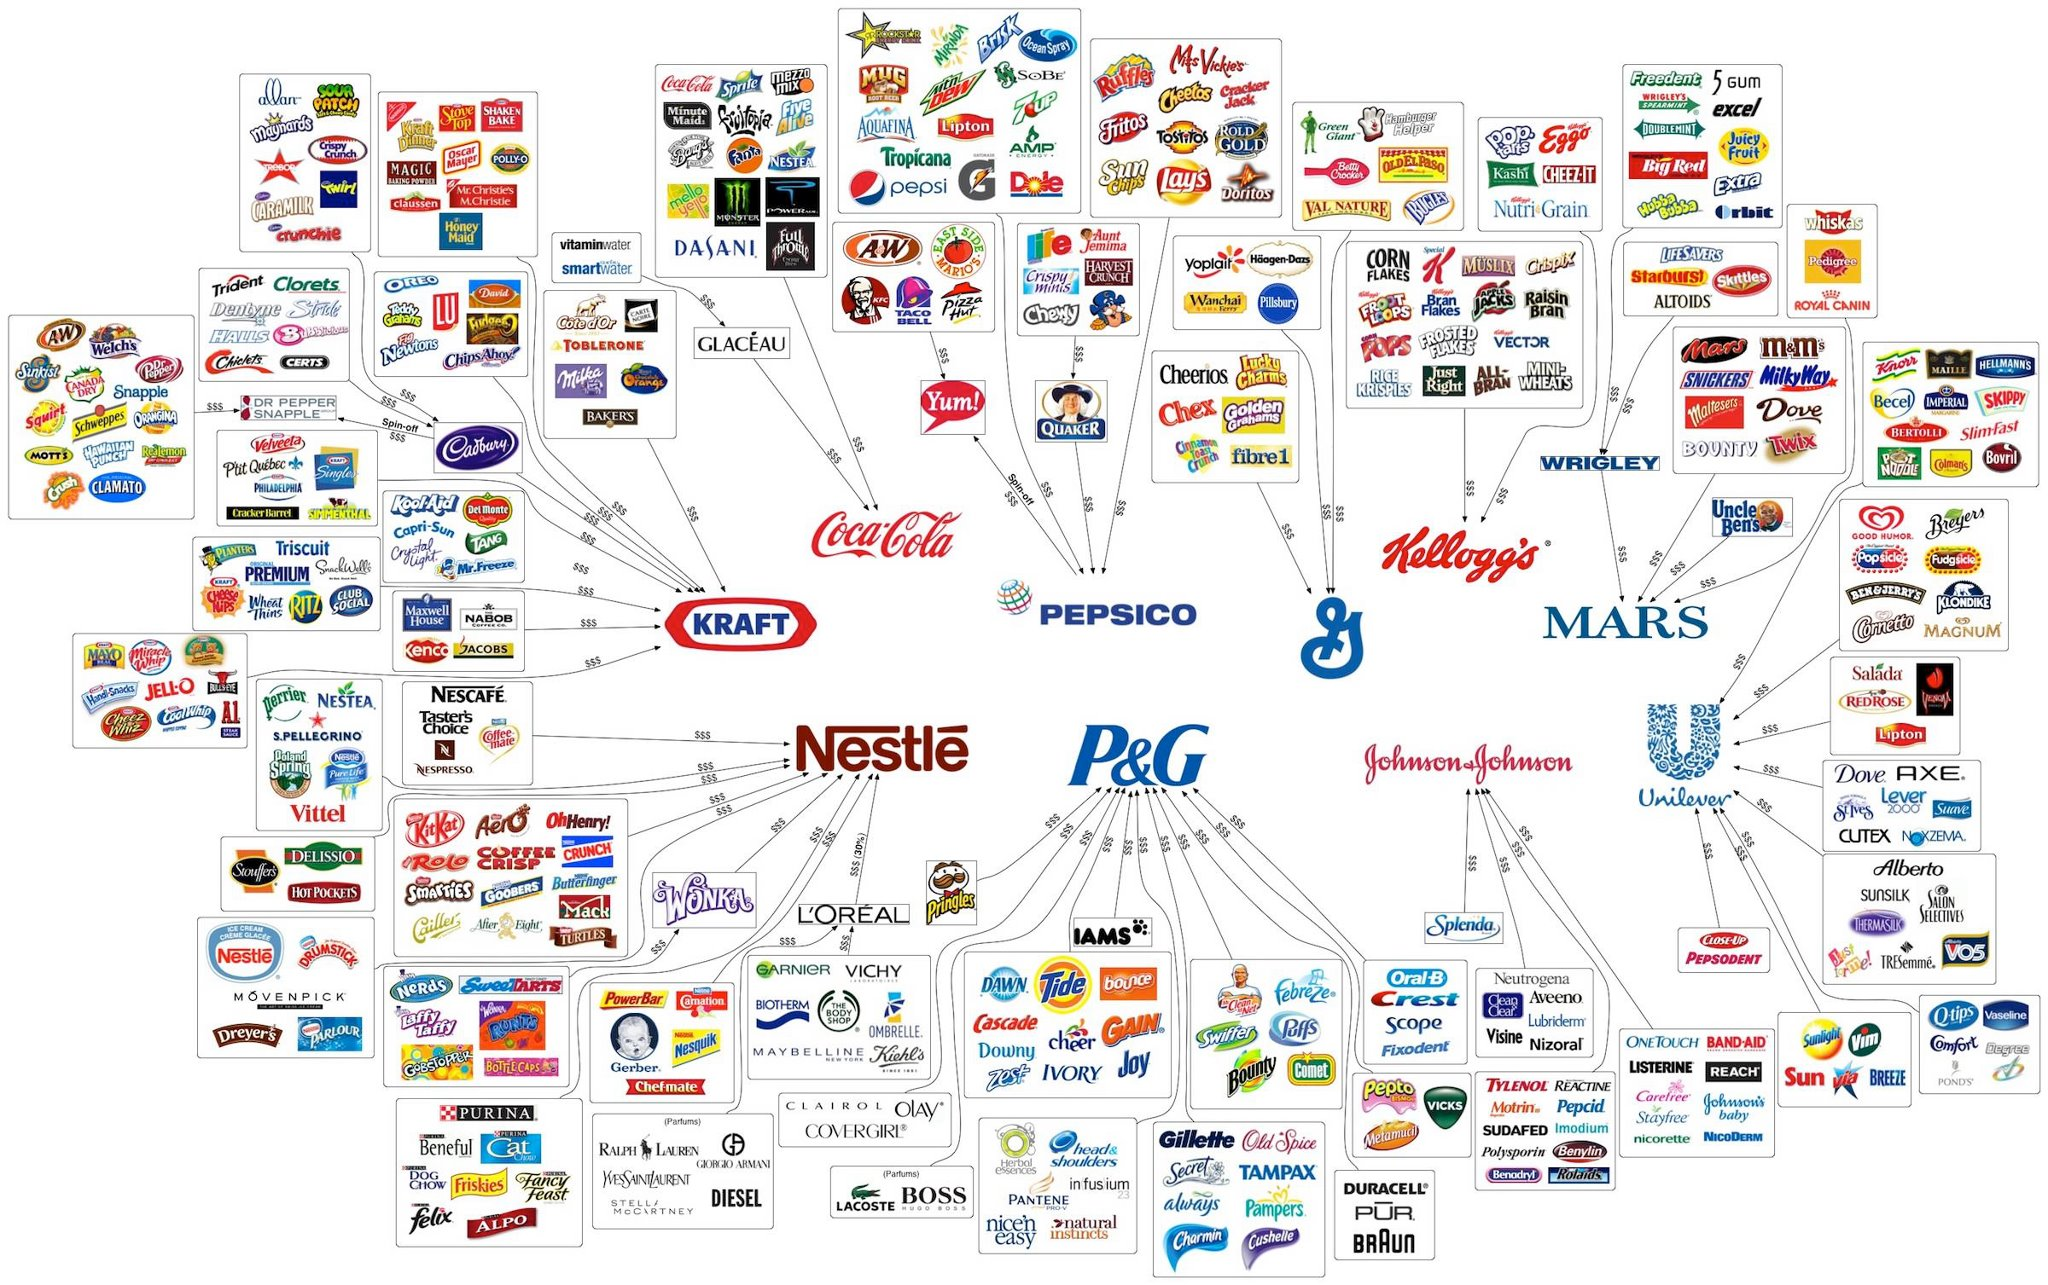 The_Ten_Major_Food_Companies